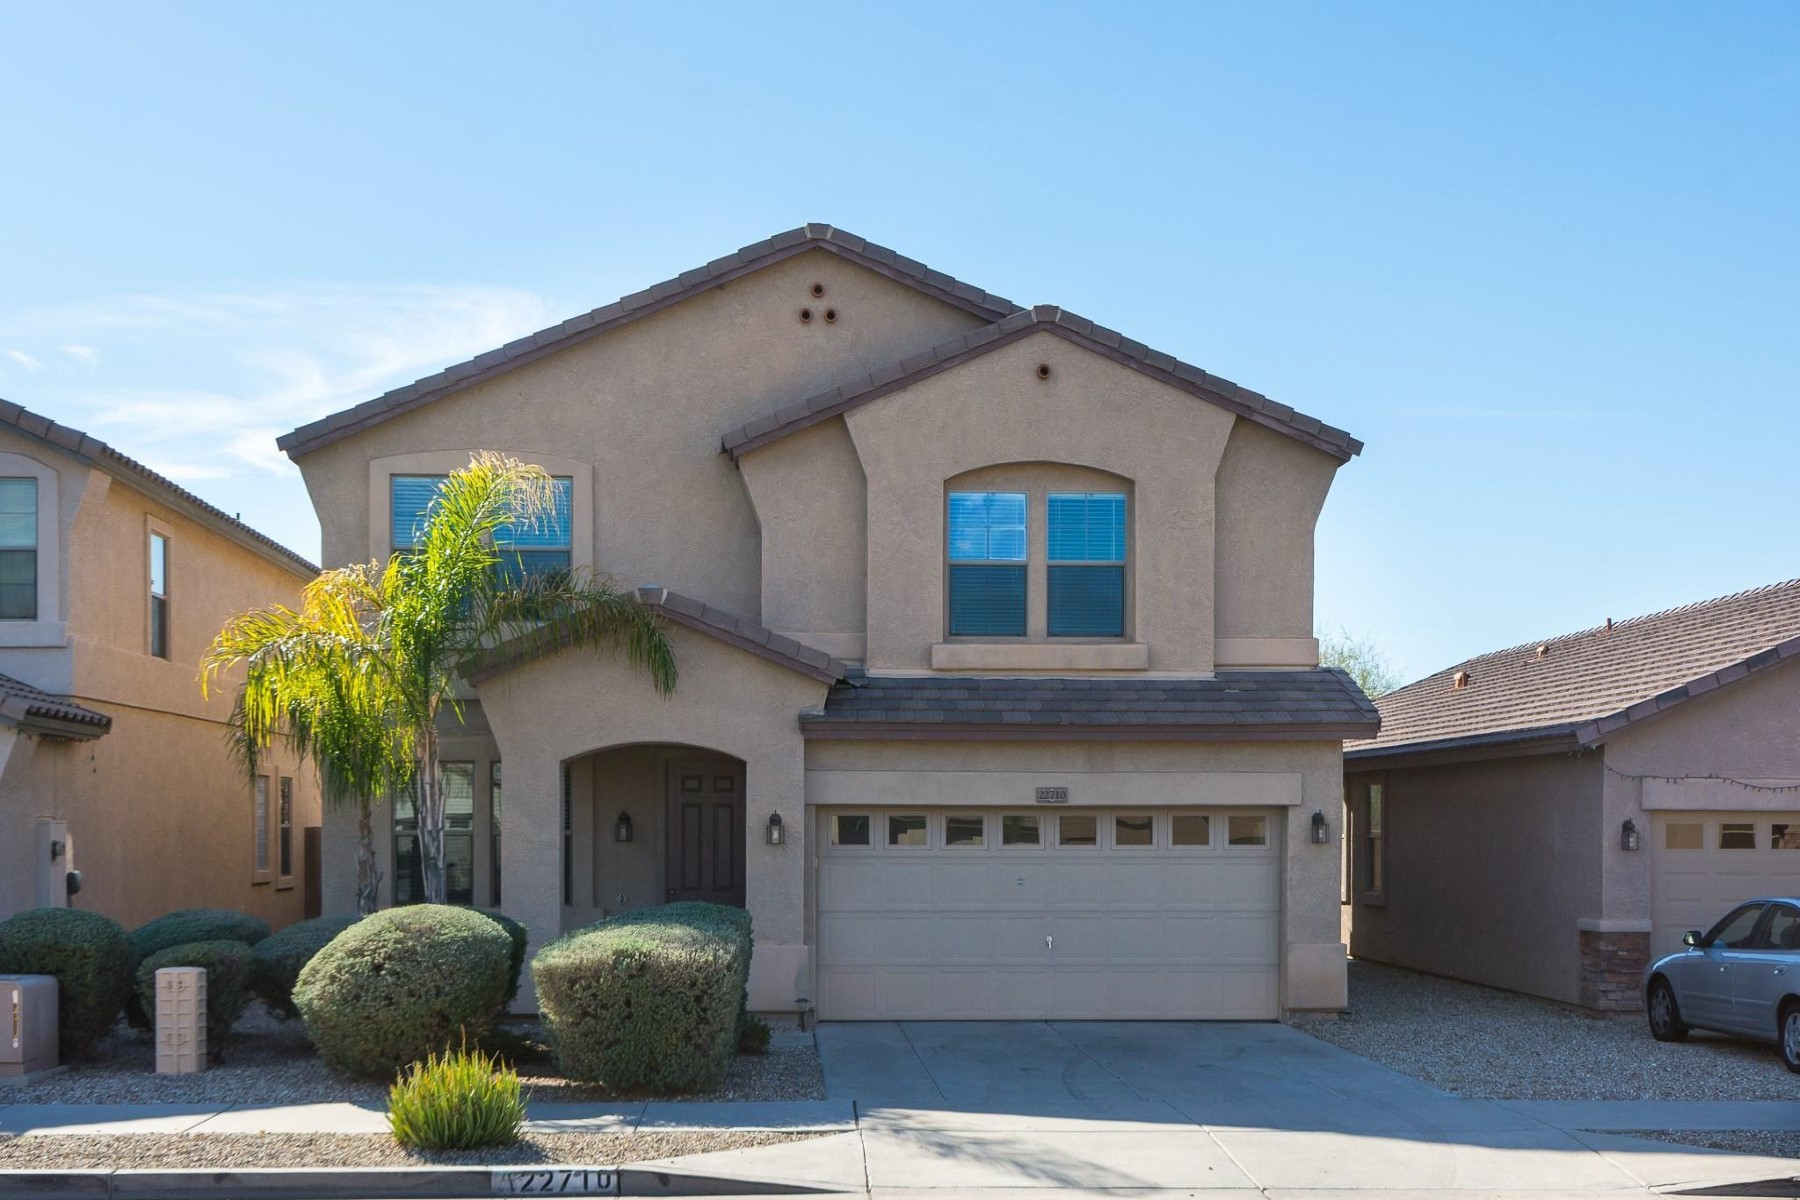 sales property at Quaint home situated in the desirable Eagle Bluff neighborhood